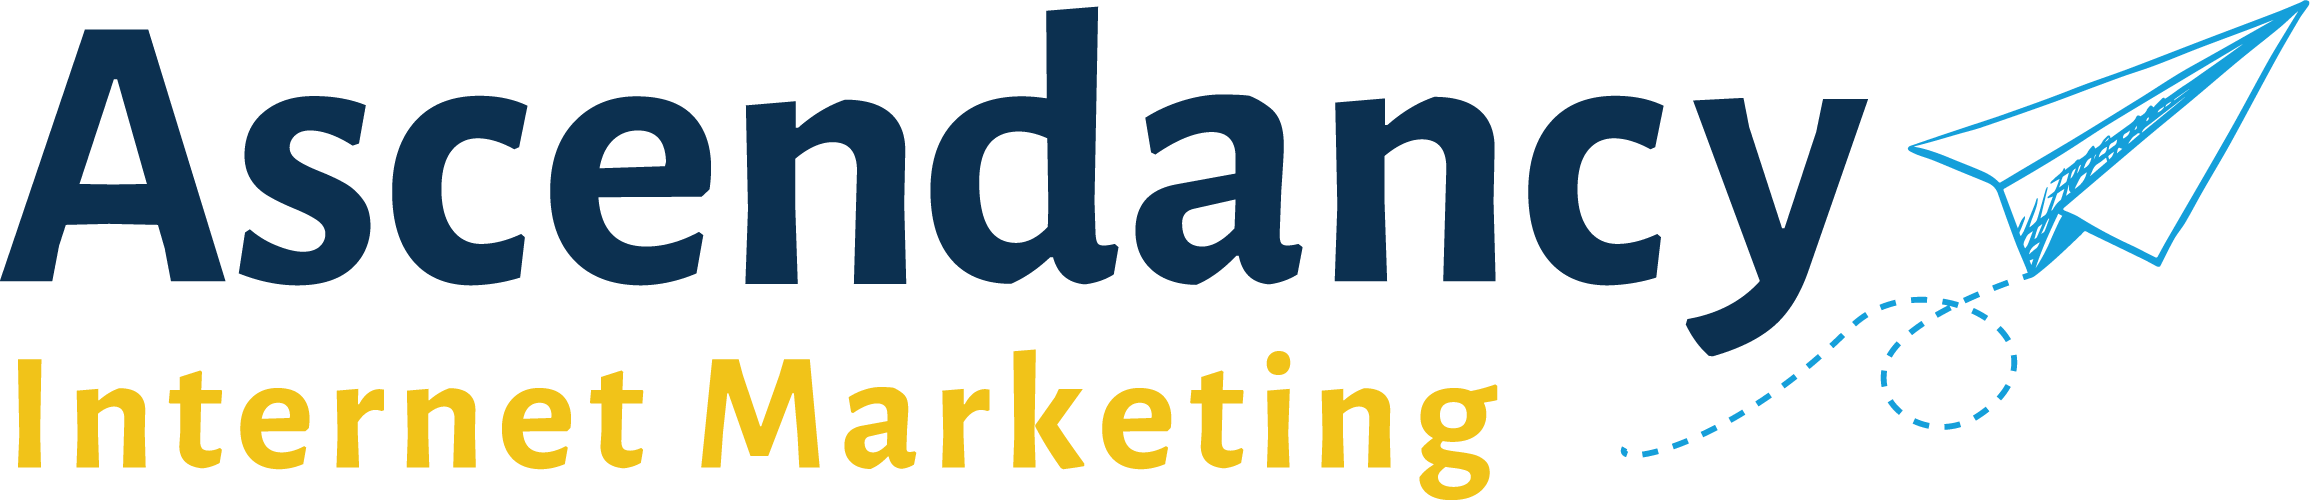 Ascendancy Internet Marketing Ltd